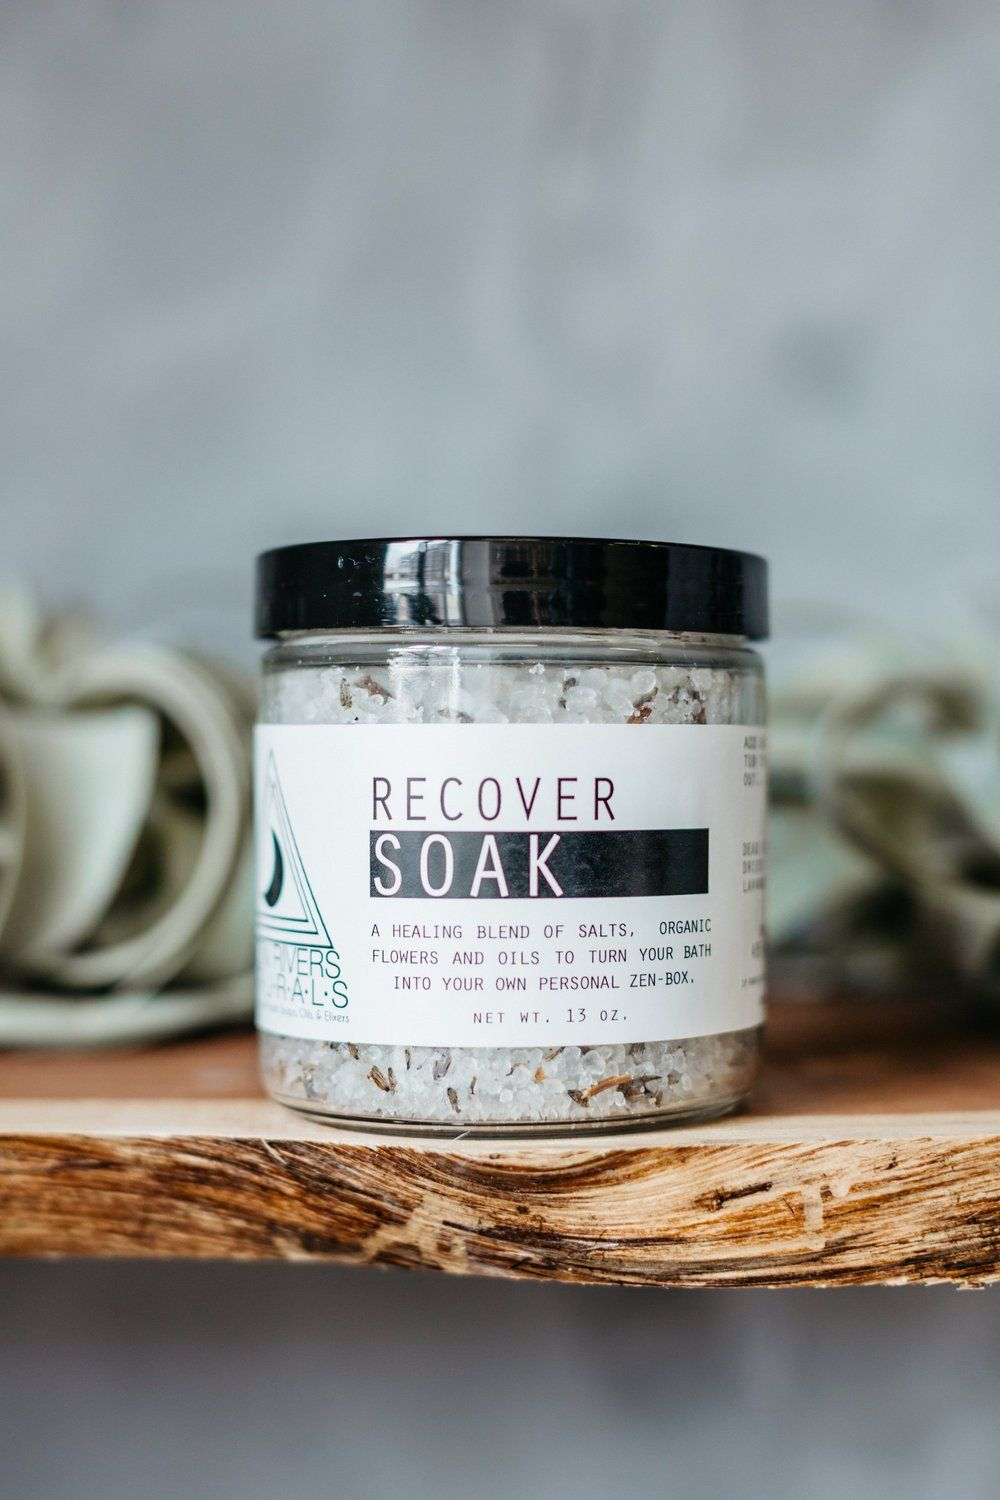 Moon Rivers Naturals Recover Soak - White Rock Soap Gallery